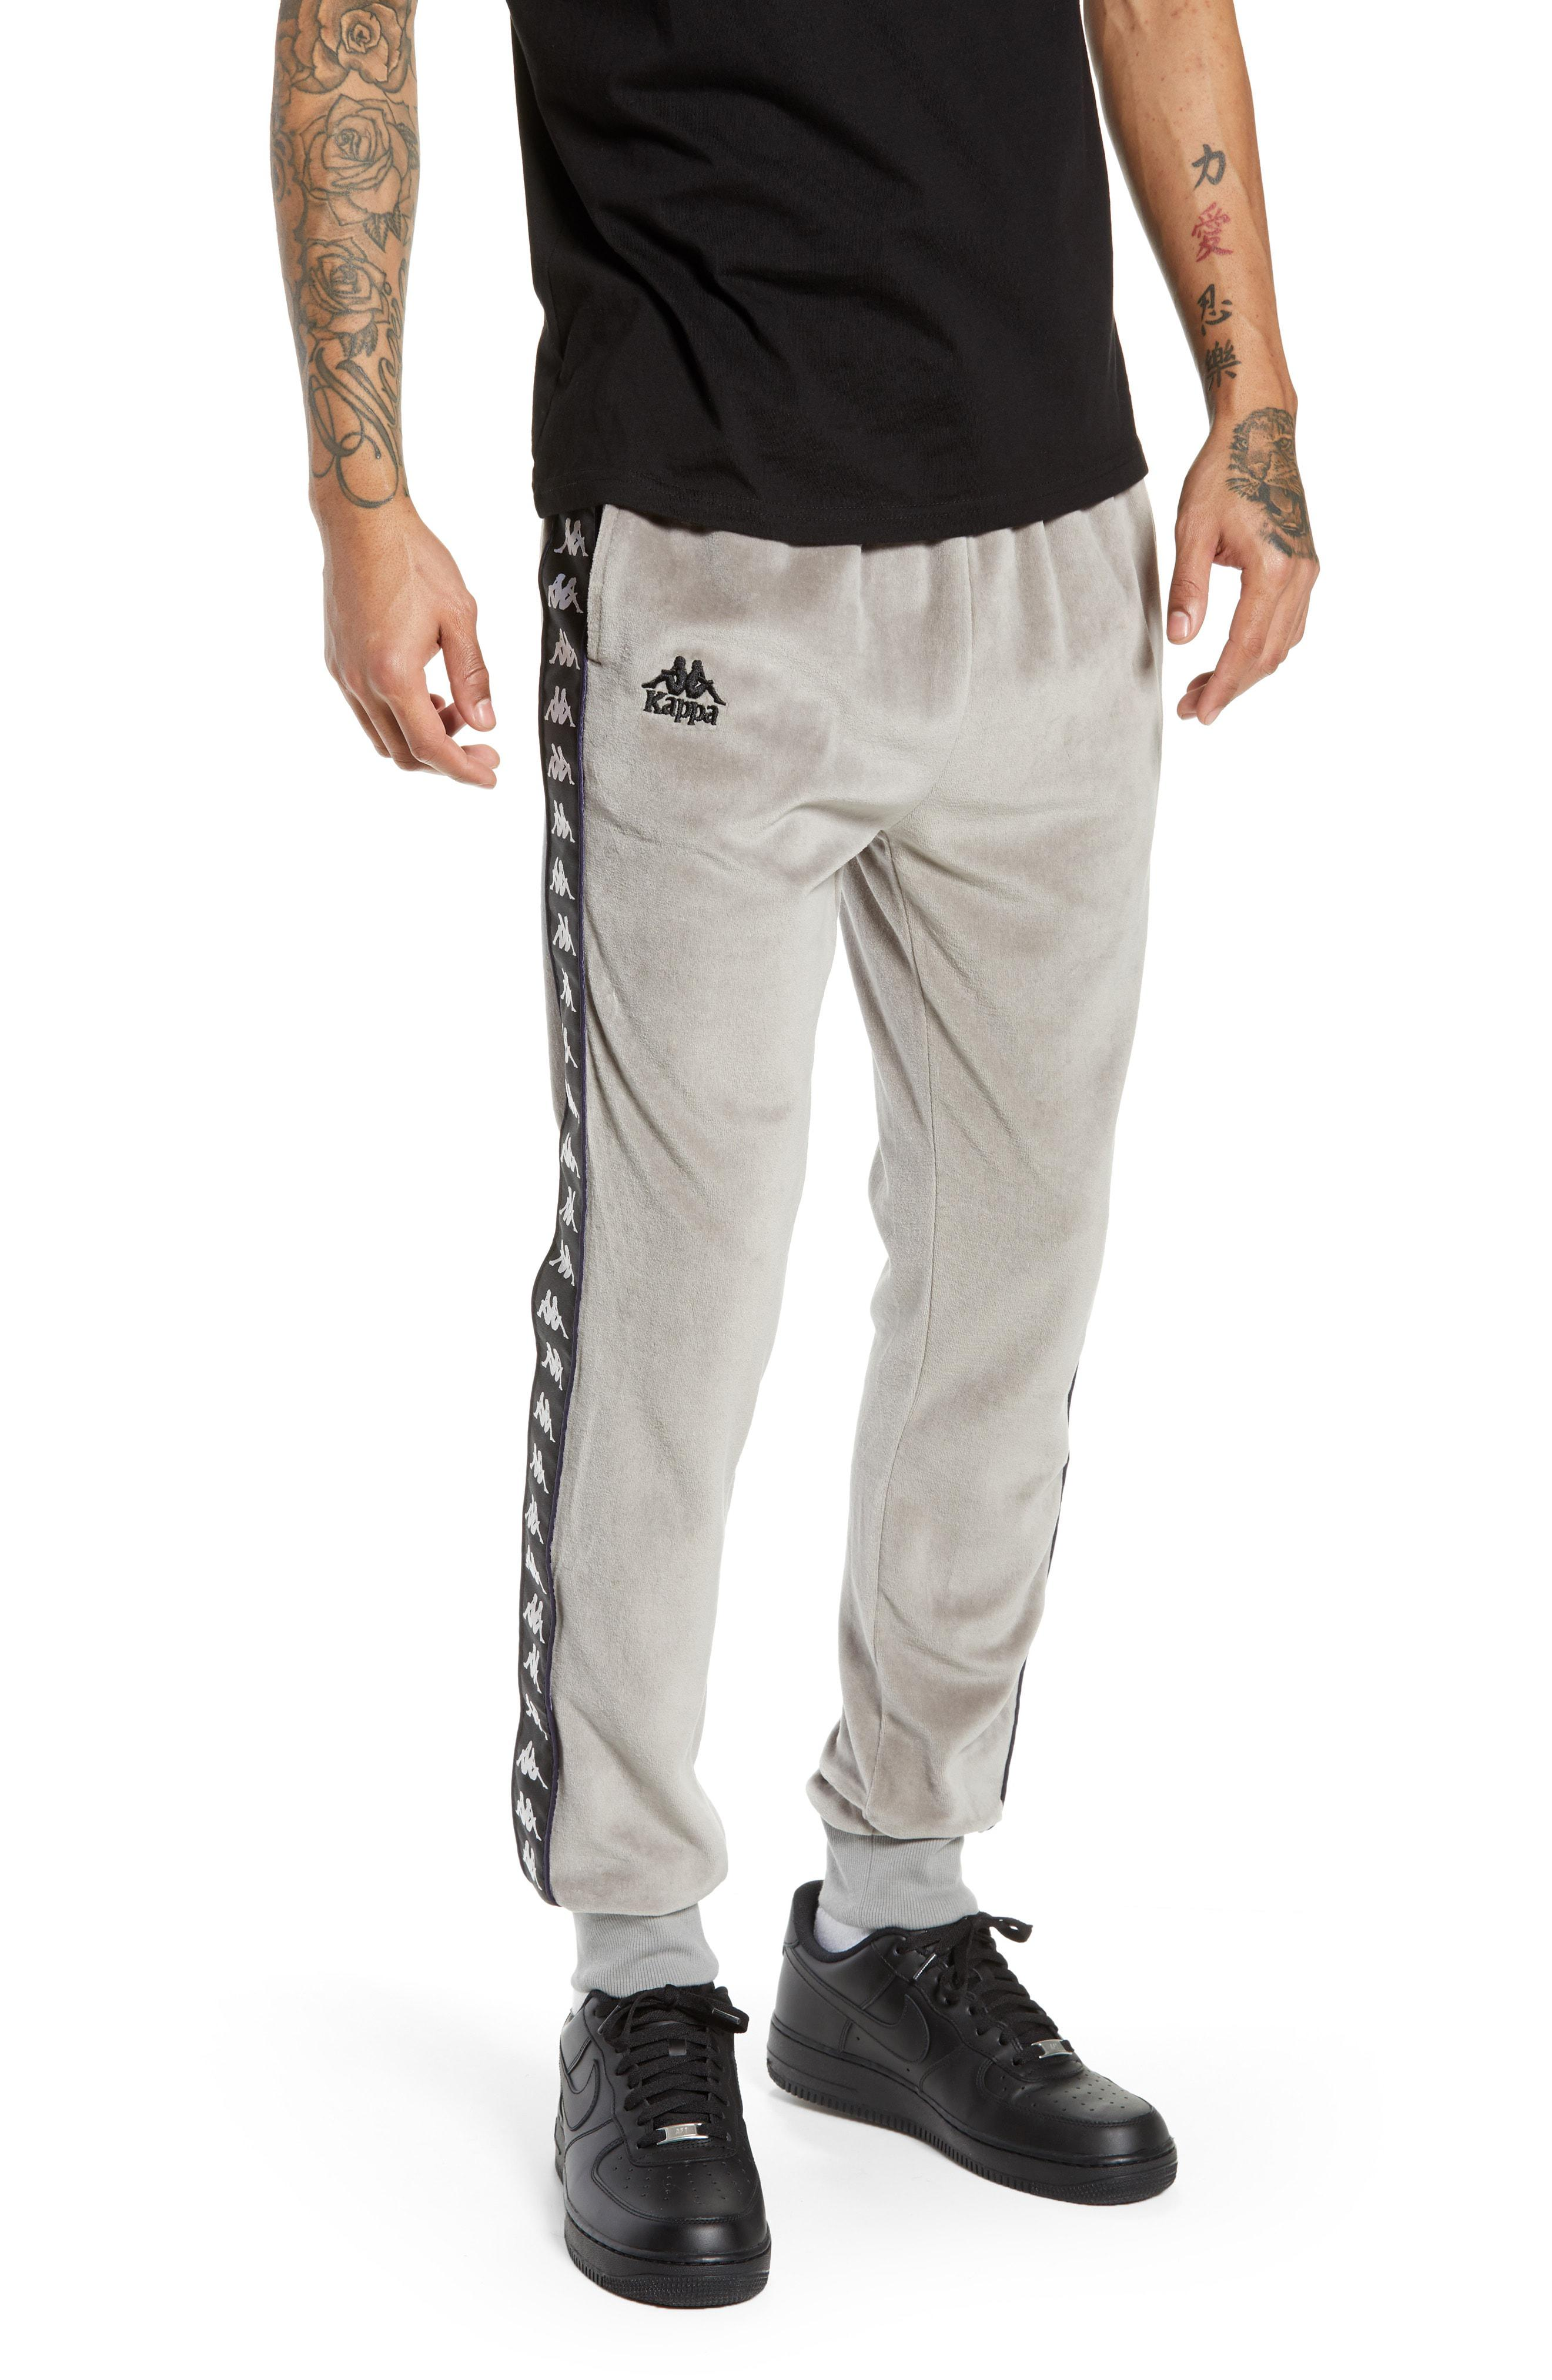 7efa50b8ef Kappa Gray Authentic Ayne Velour Sweatpants for men